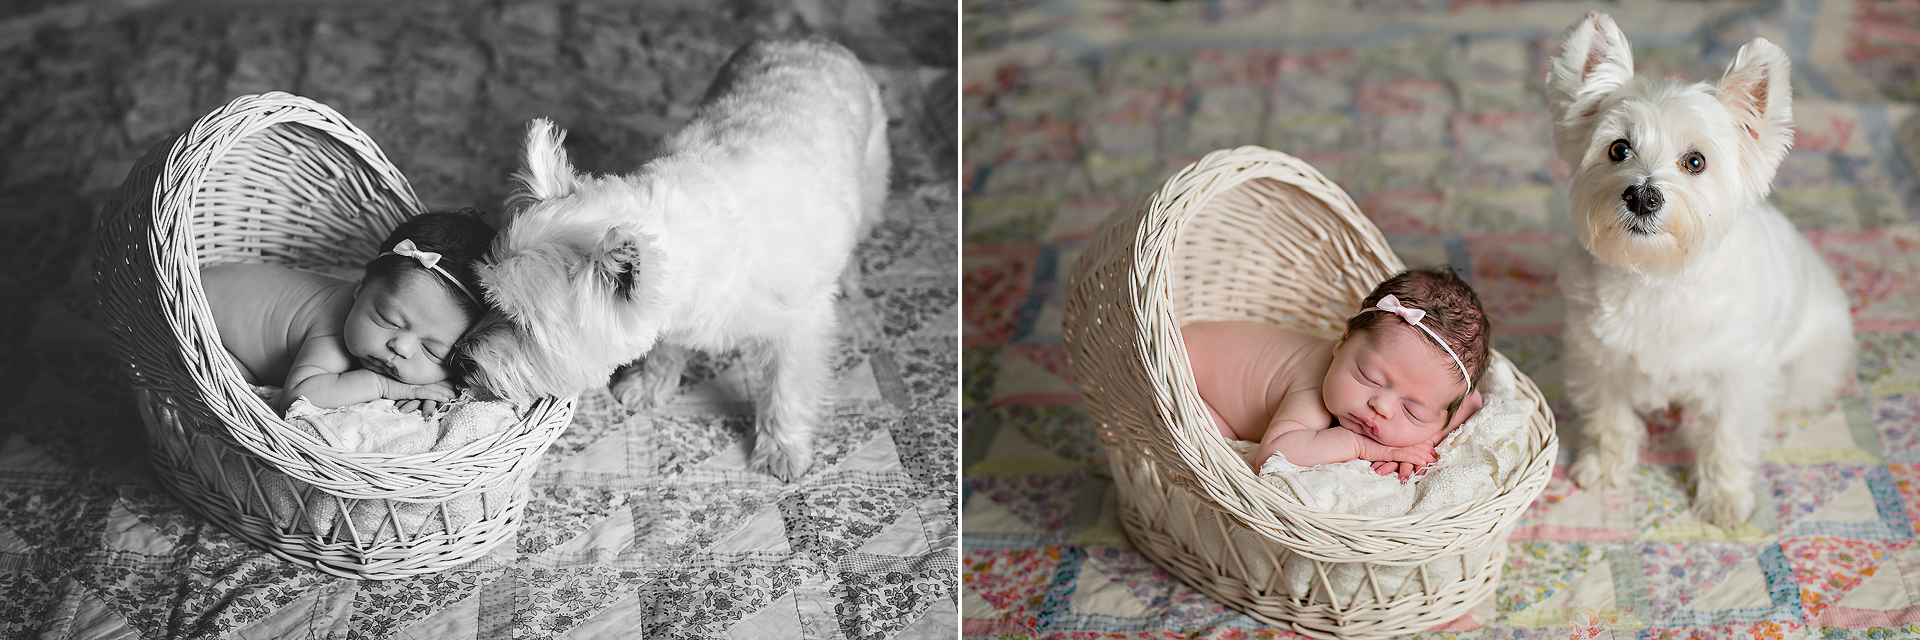 Sleeping newborn and dog pose - Tonya Teran Photography - Bethesda, MD Newborn Baby and Family Photographer